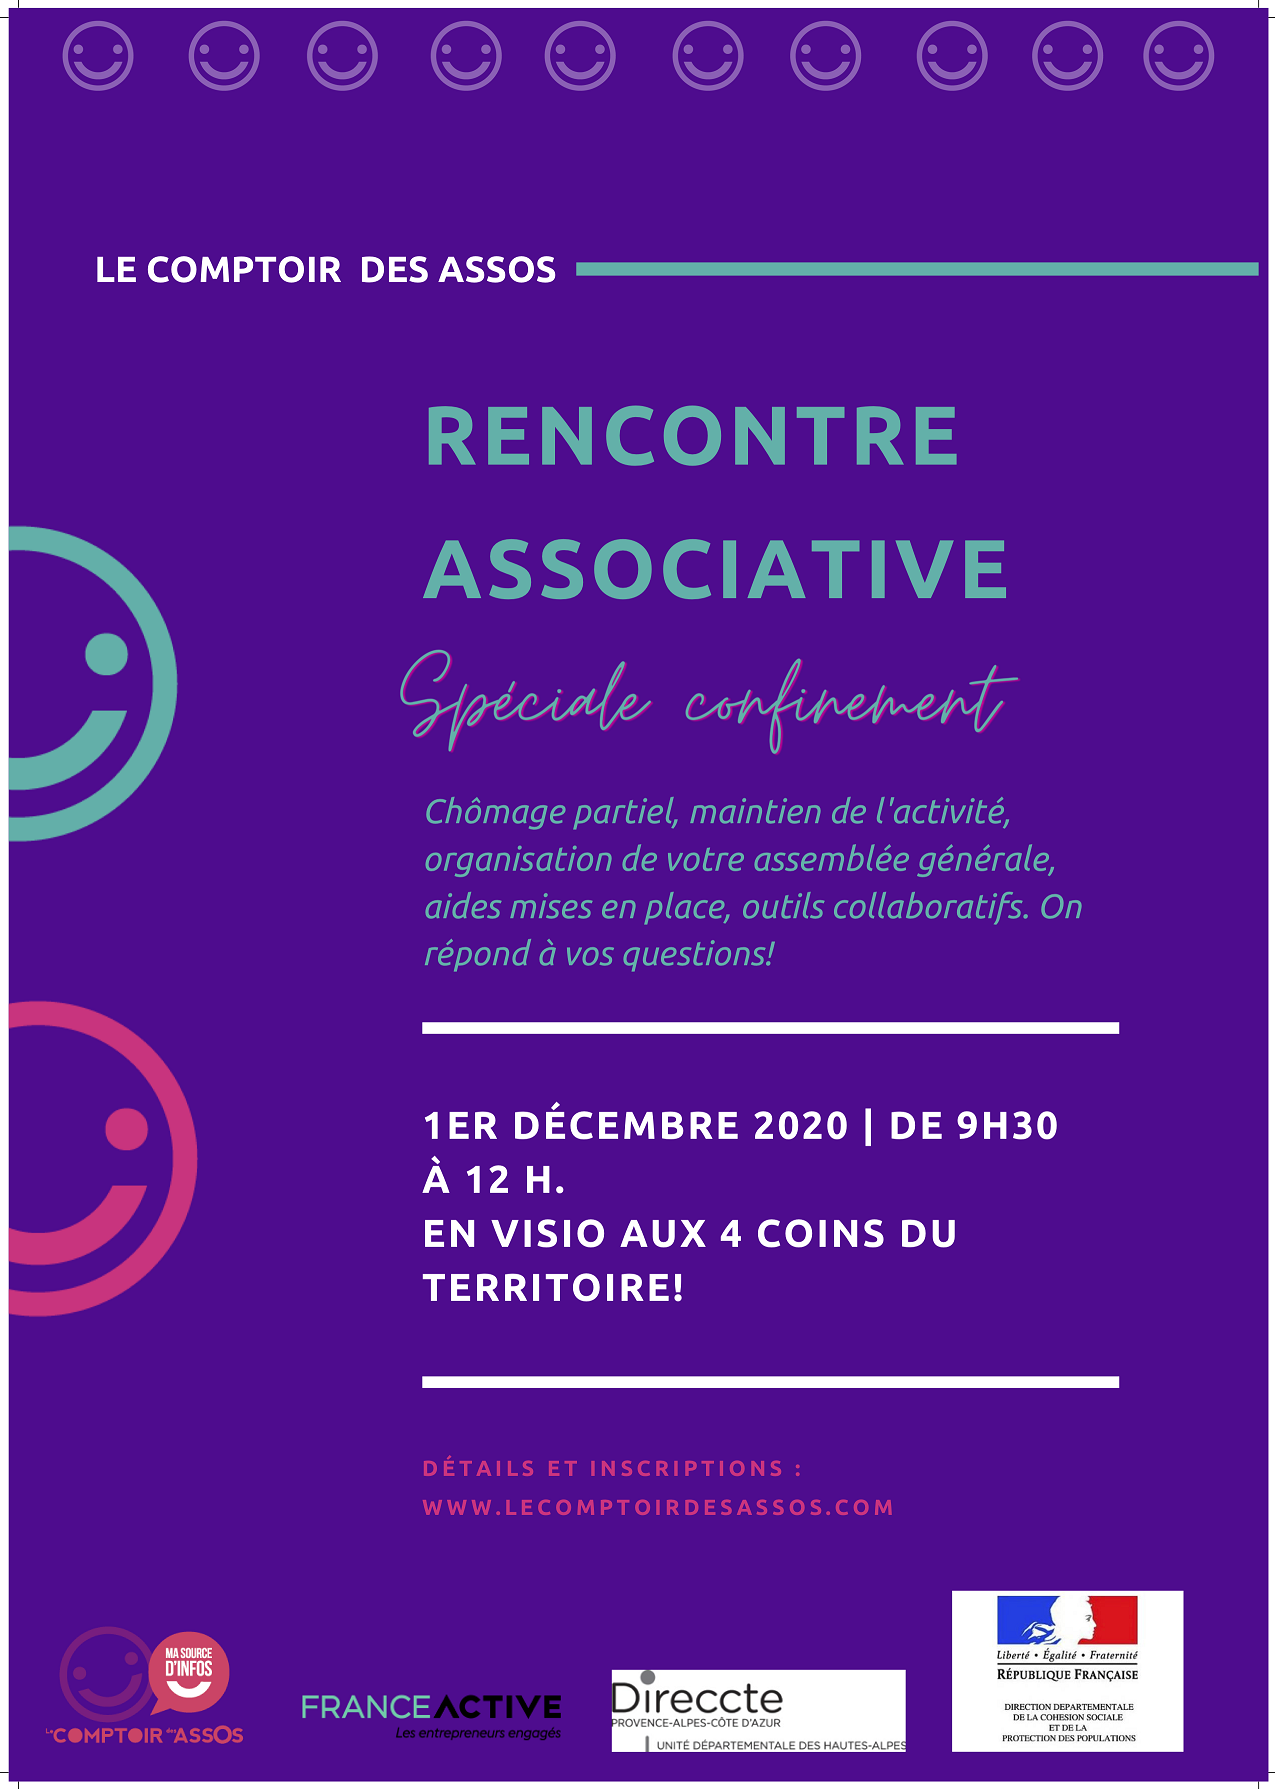 Rencontre Associative – Spéciale confinement !